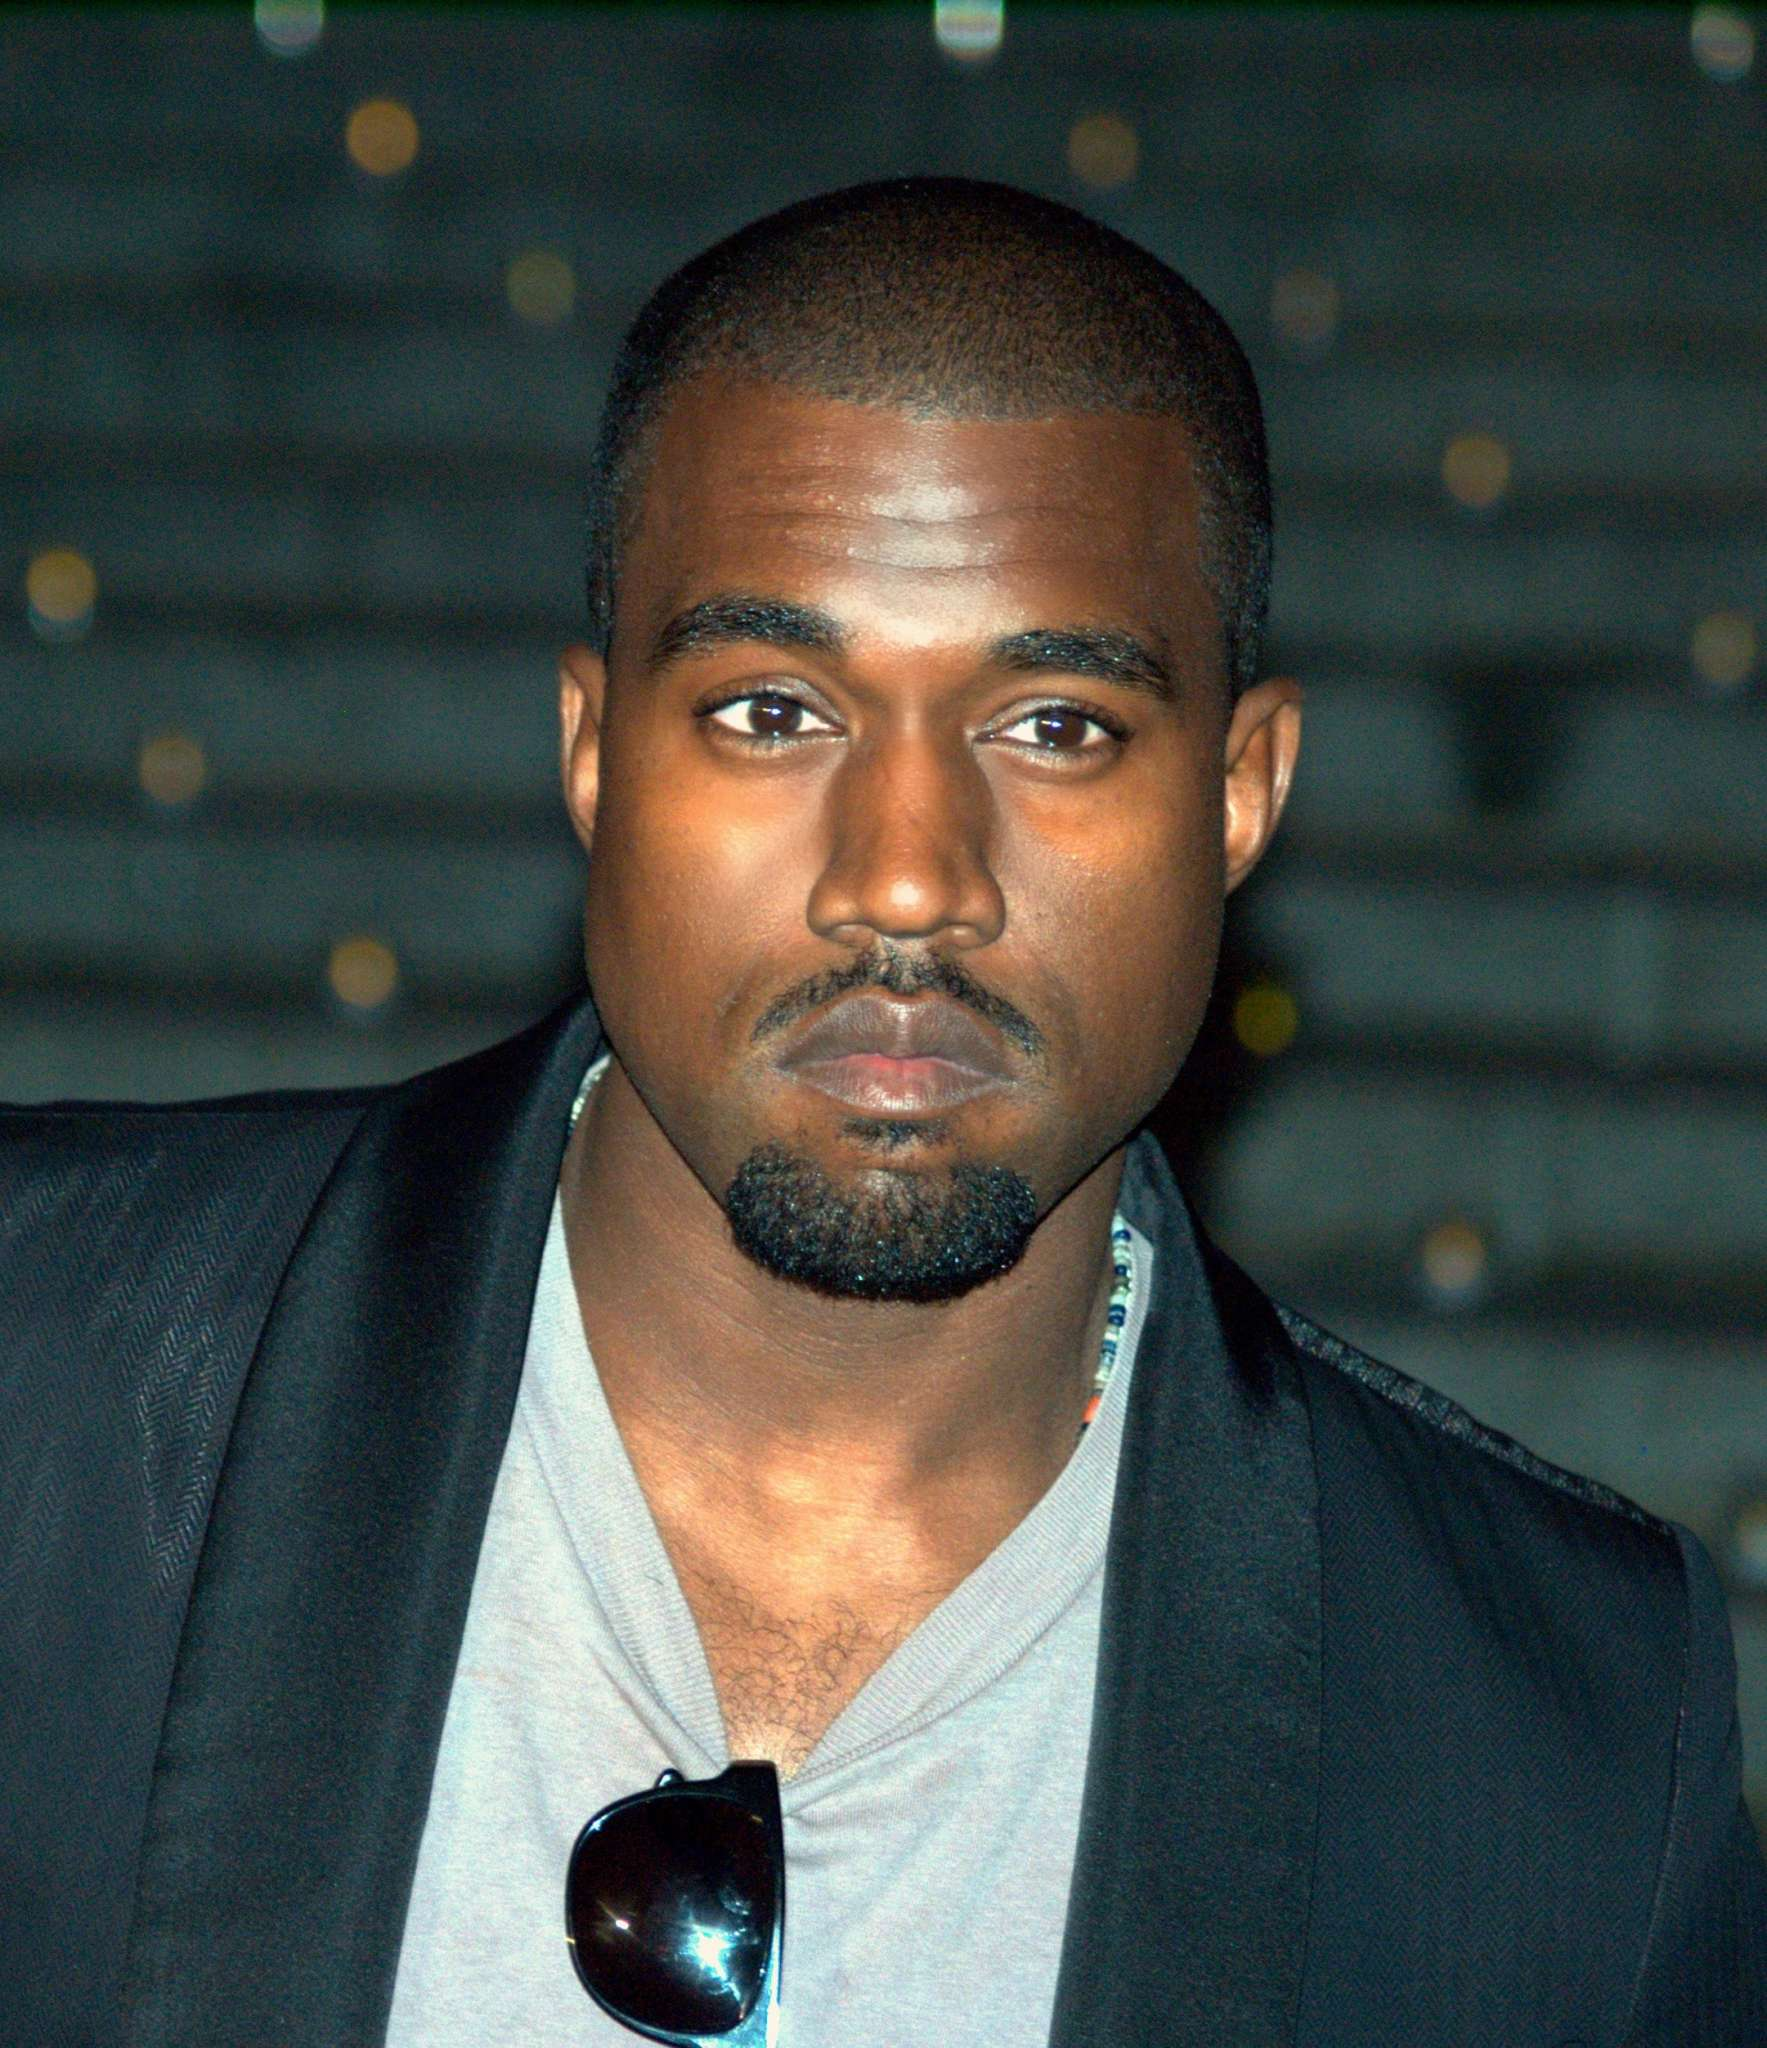 kanye-wests-fans-are-going-crazy-with-excitement-check-out-his-latest-achievement